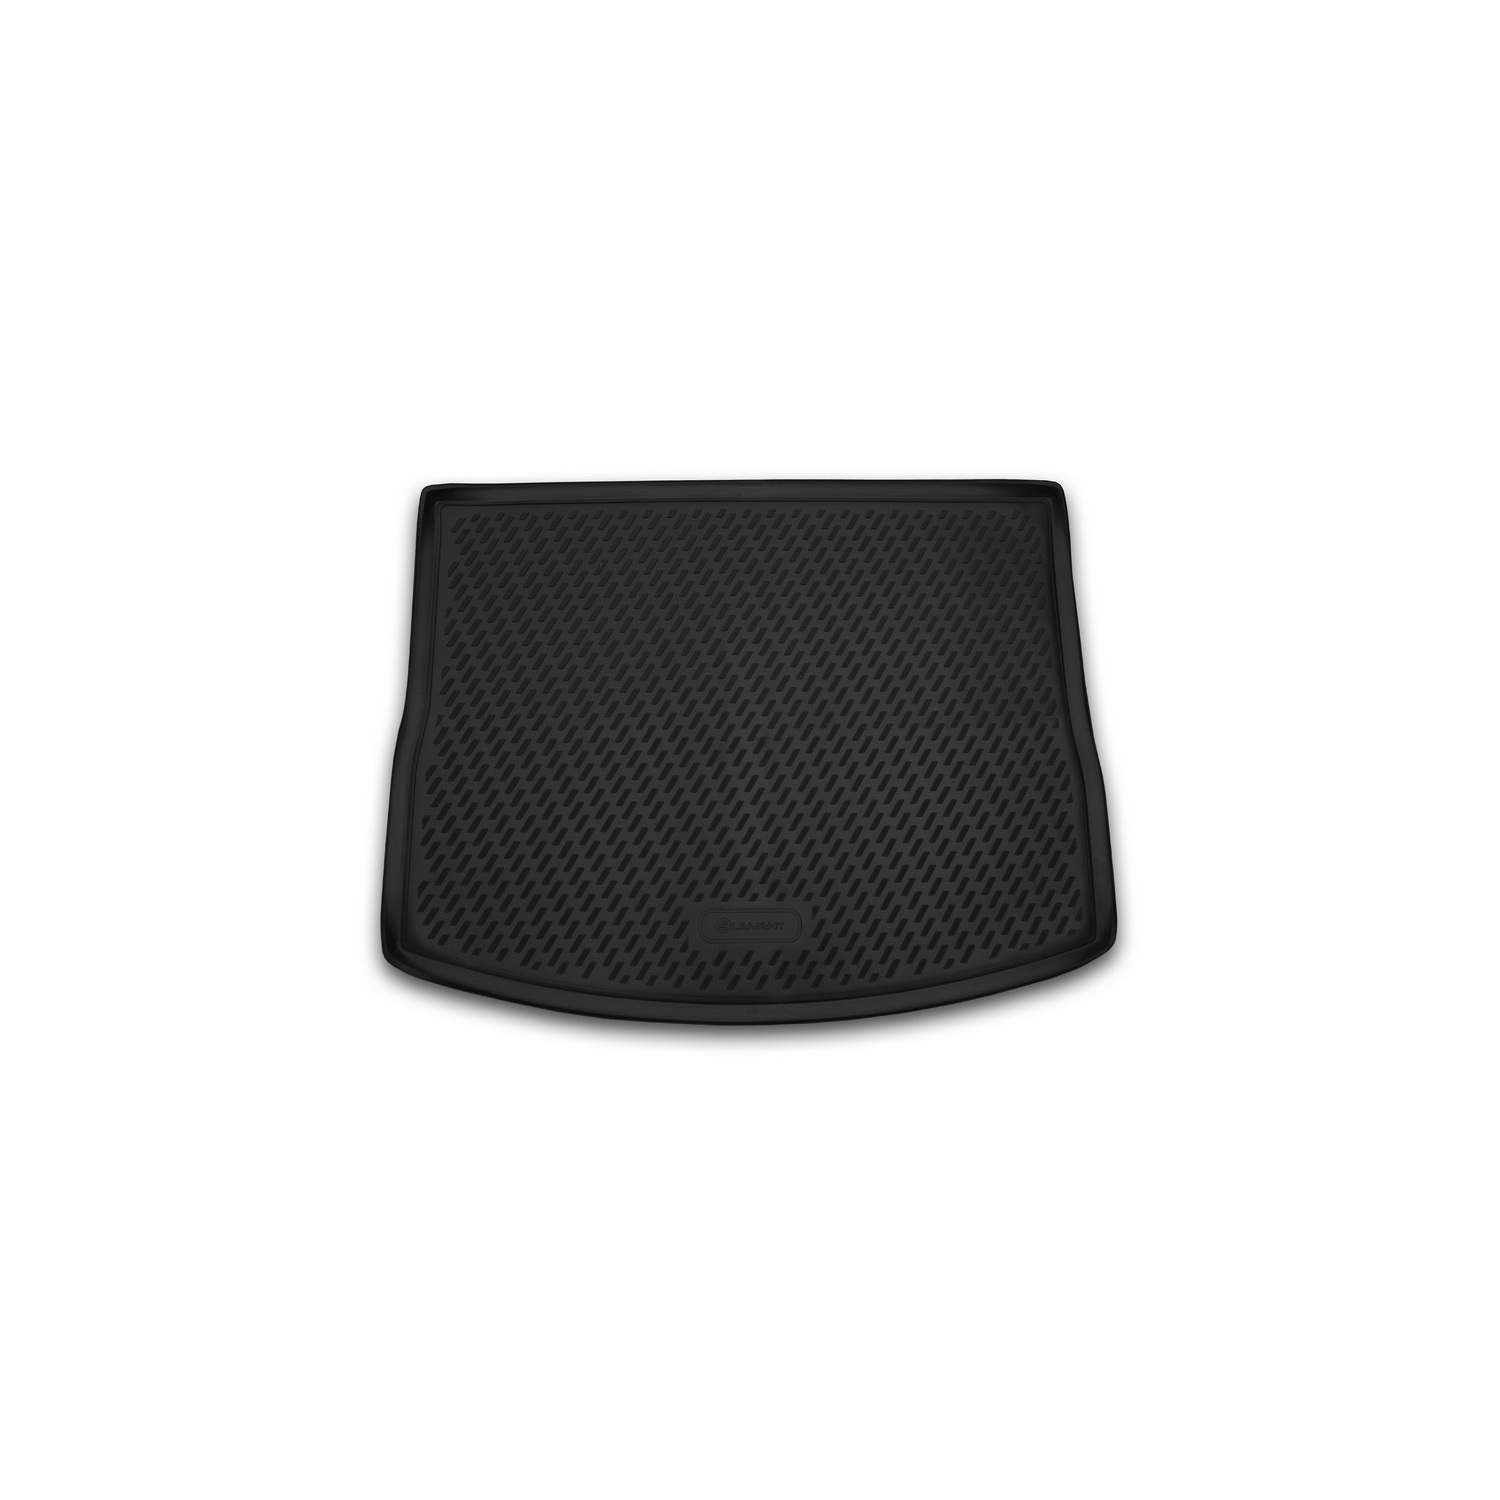 Trunk Mat For SUZUKI SX-4 2013, Cross, The Top. CARSZK10002